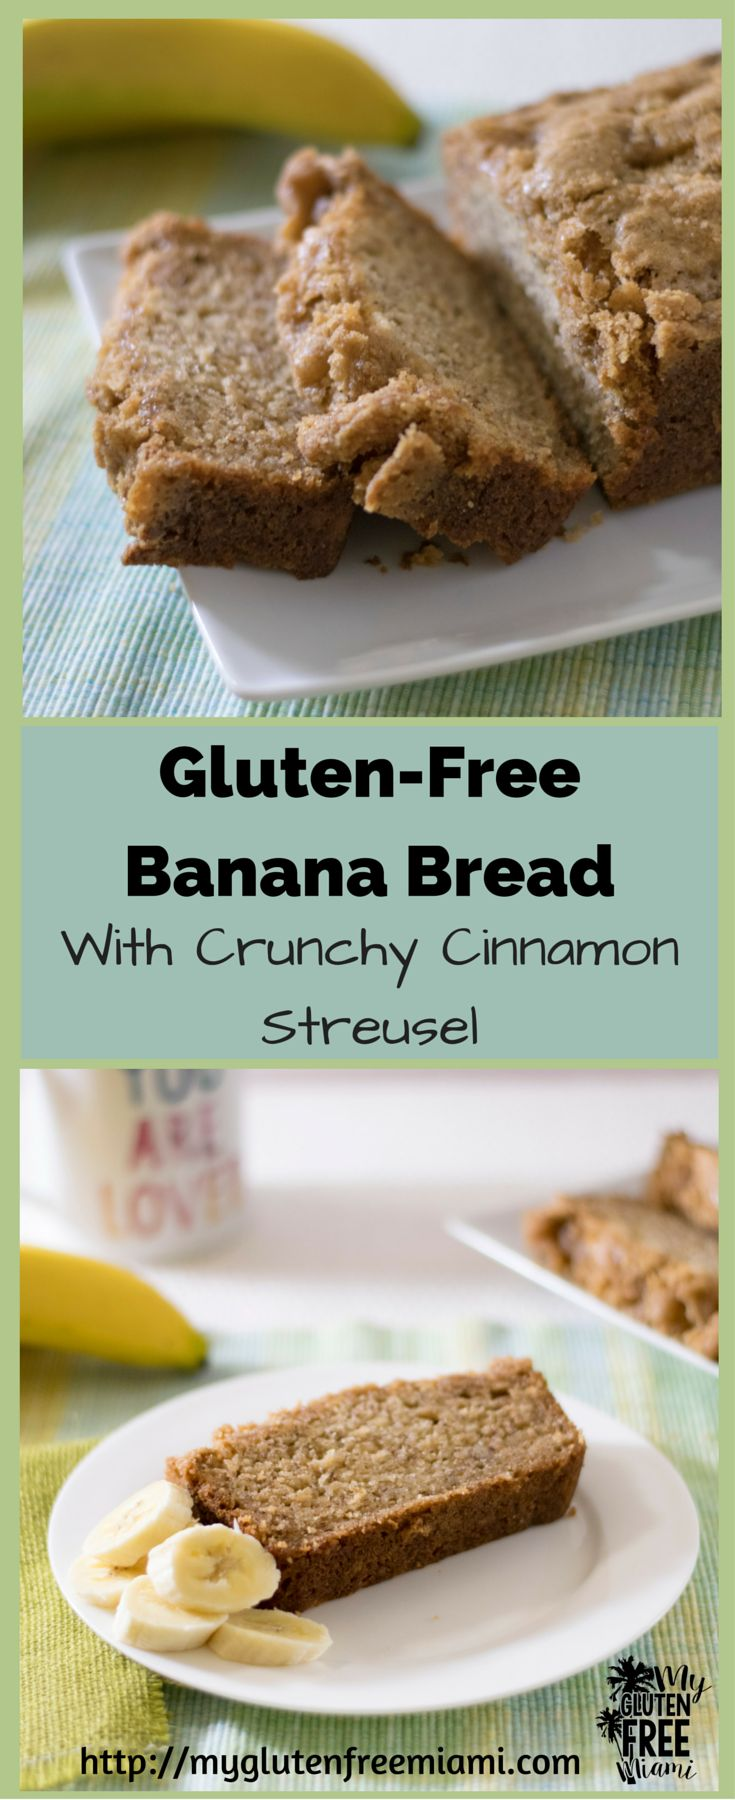 This gluten free banana bread will make everyone say yum! Delicious and moist bread with a crunchy cinnamon streusel topping. Makes a great breakfast or snack any time of day. No one will ever know it's gluten free until you tell them!